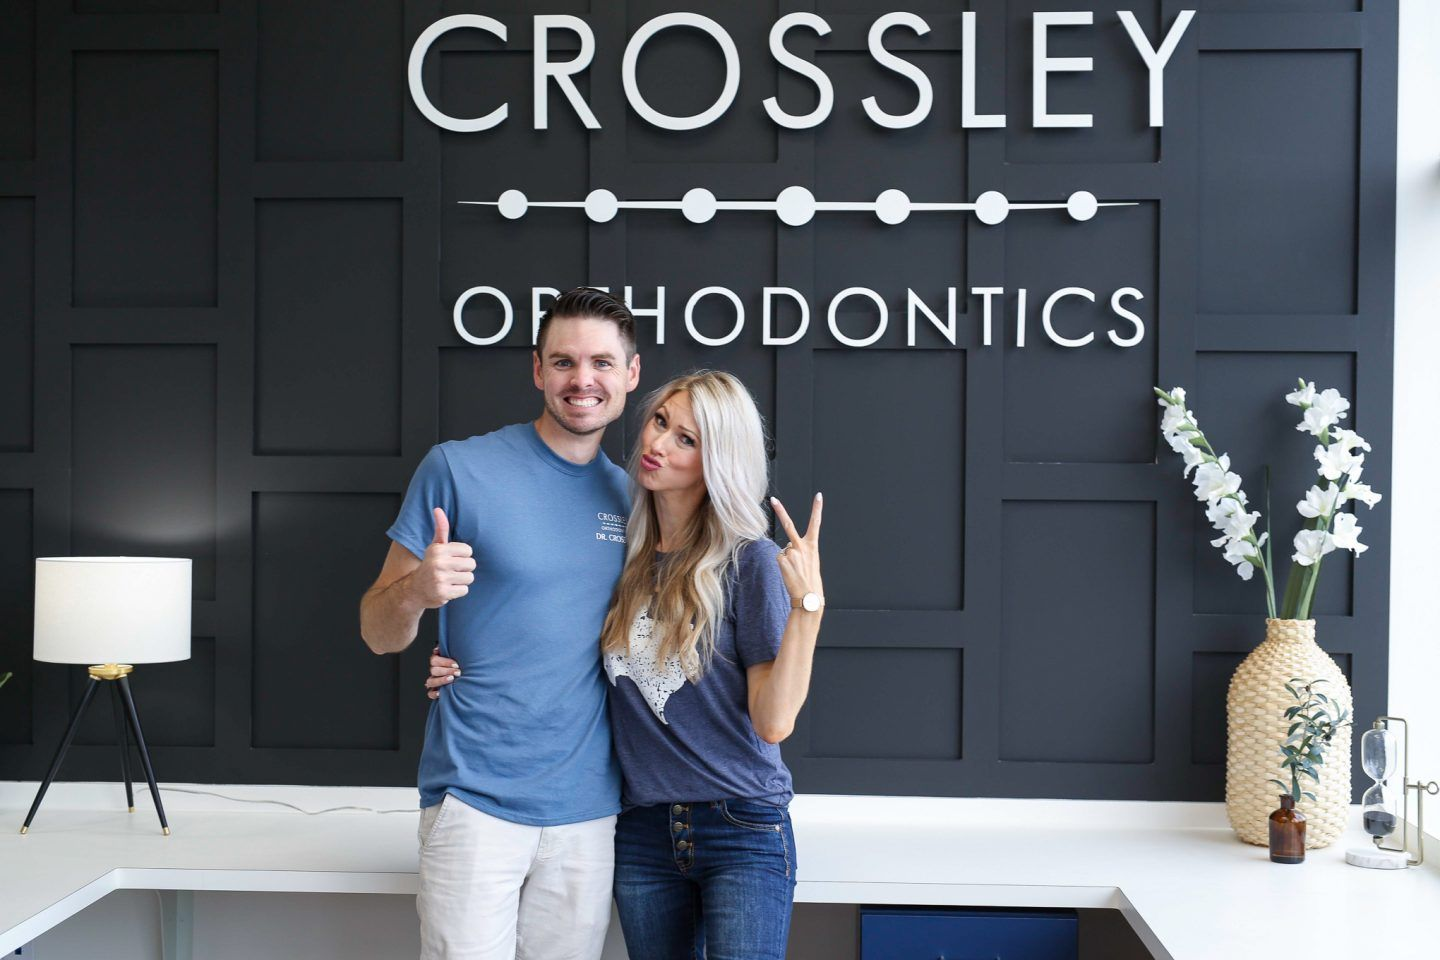 Crossley Orthodontic Office Black Accent Wall In Reception Office Janenecrossley Dental Office Design Orthodontic Office Dental Office Decor